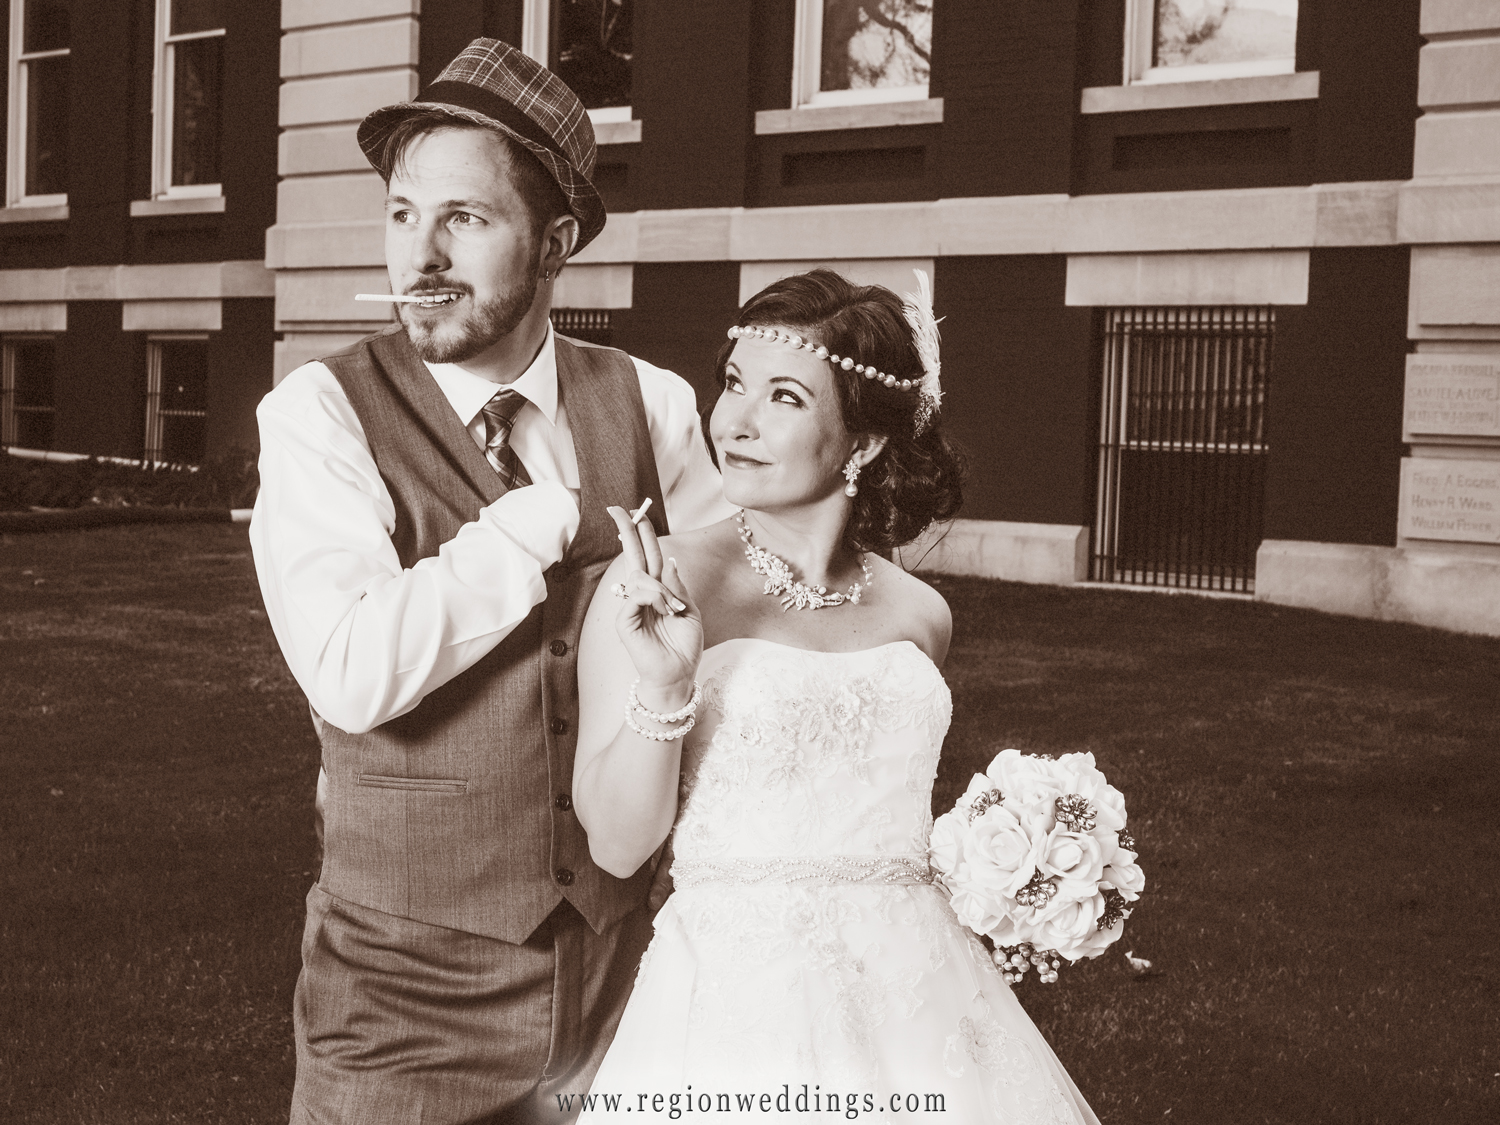 A 1920's Themed bride and groom at the Old Crown Point Courthouse.